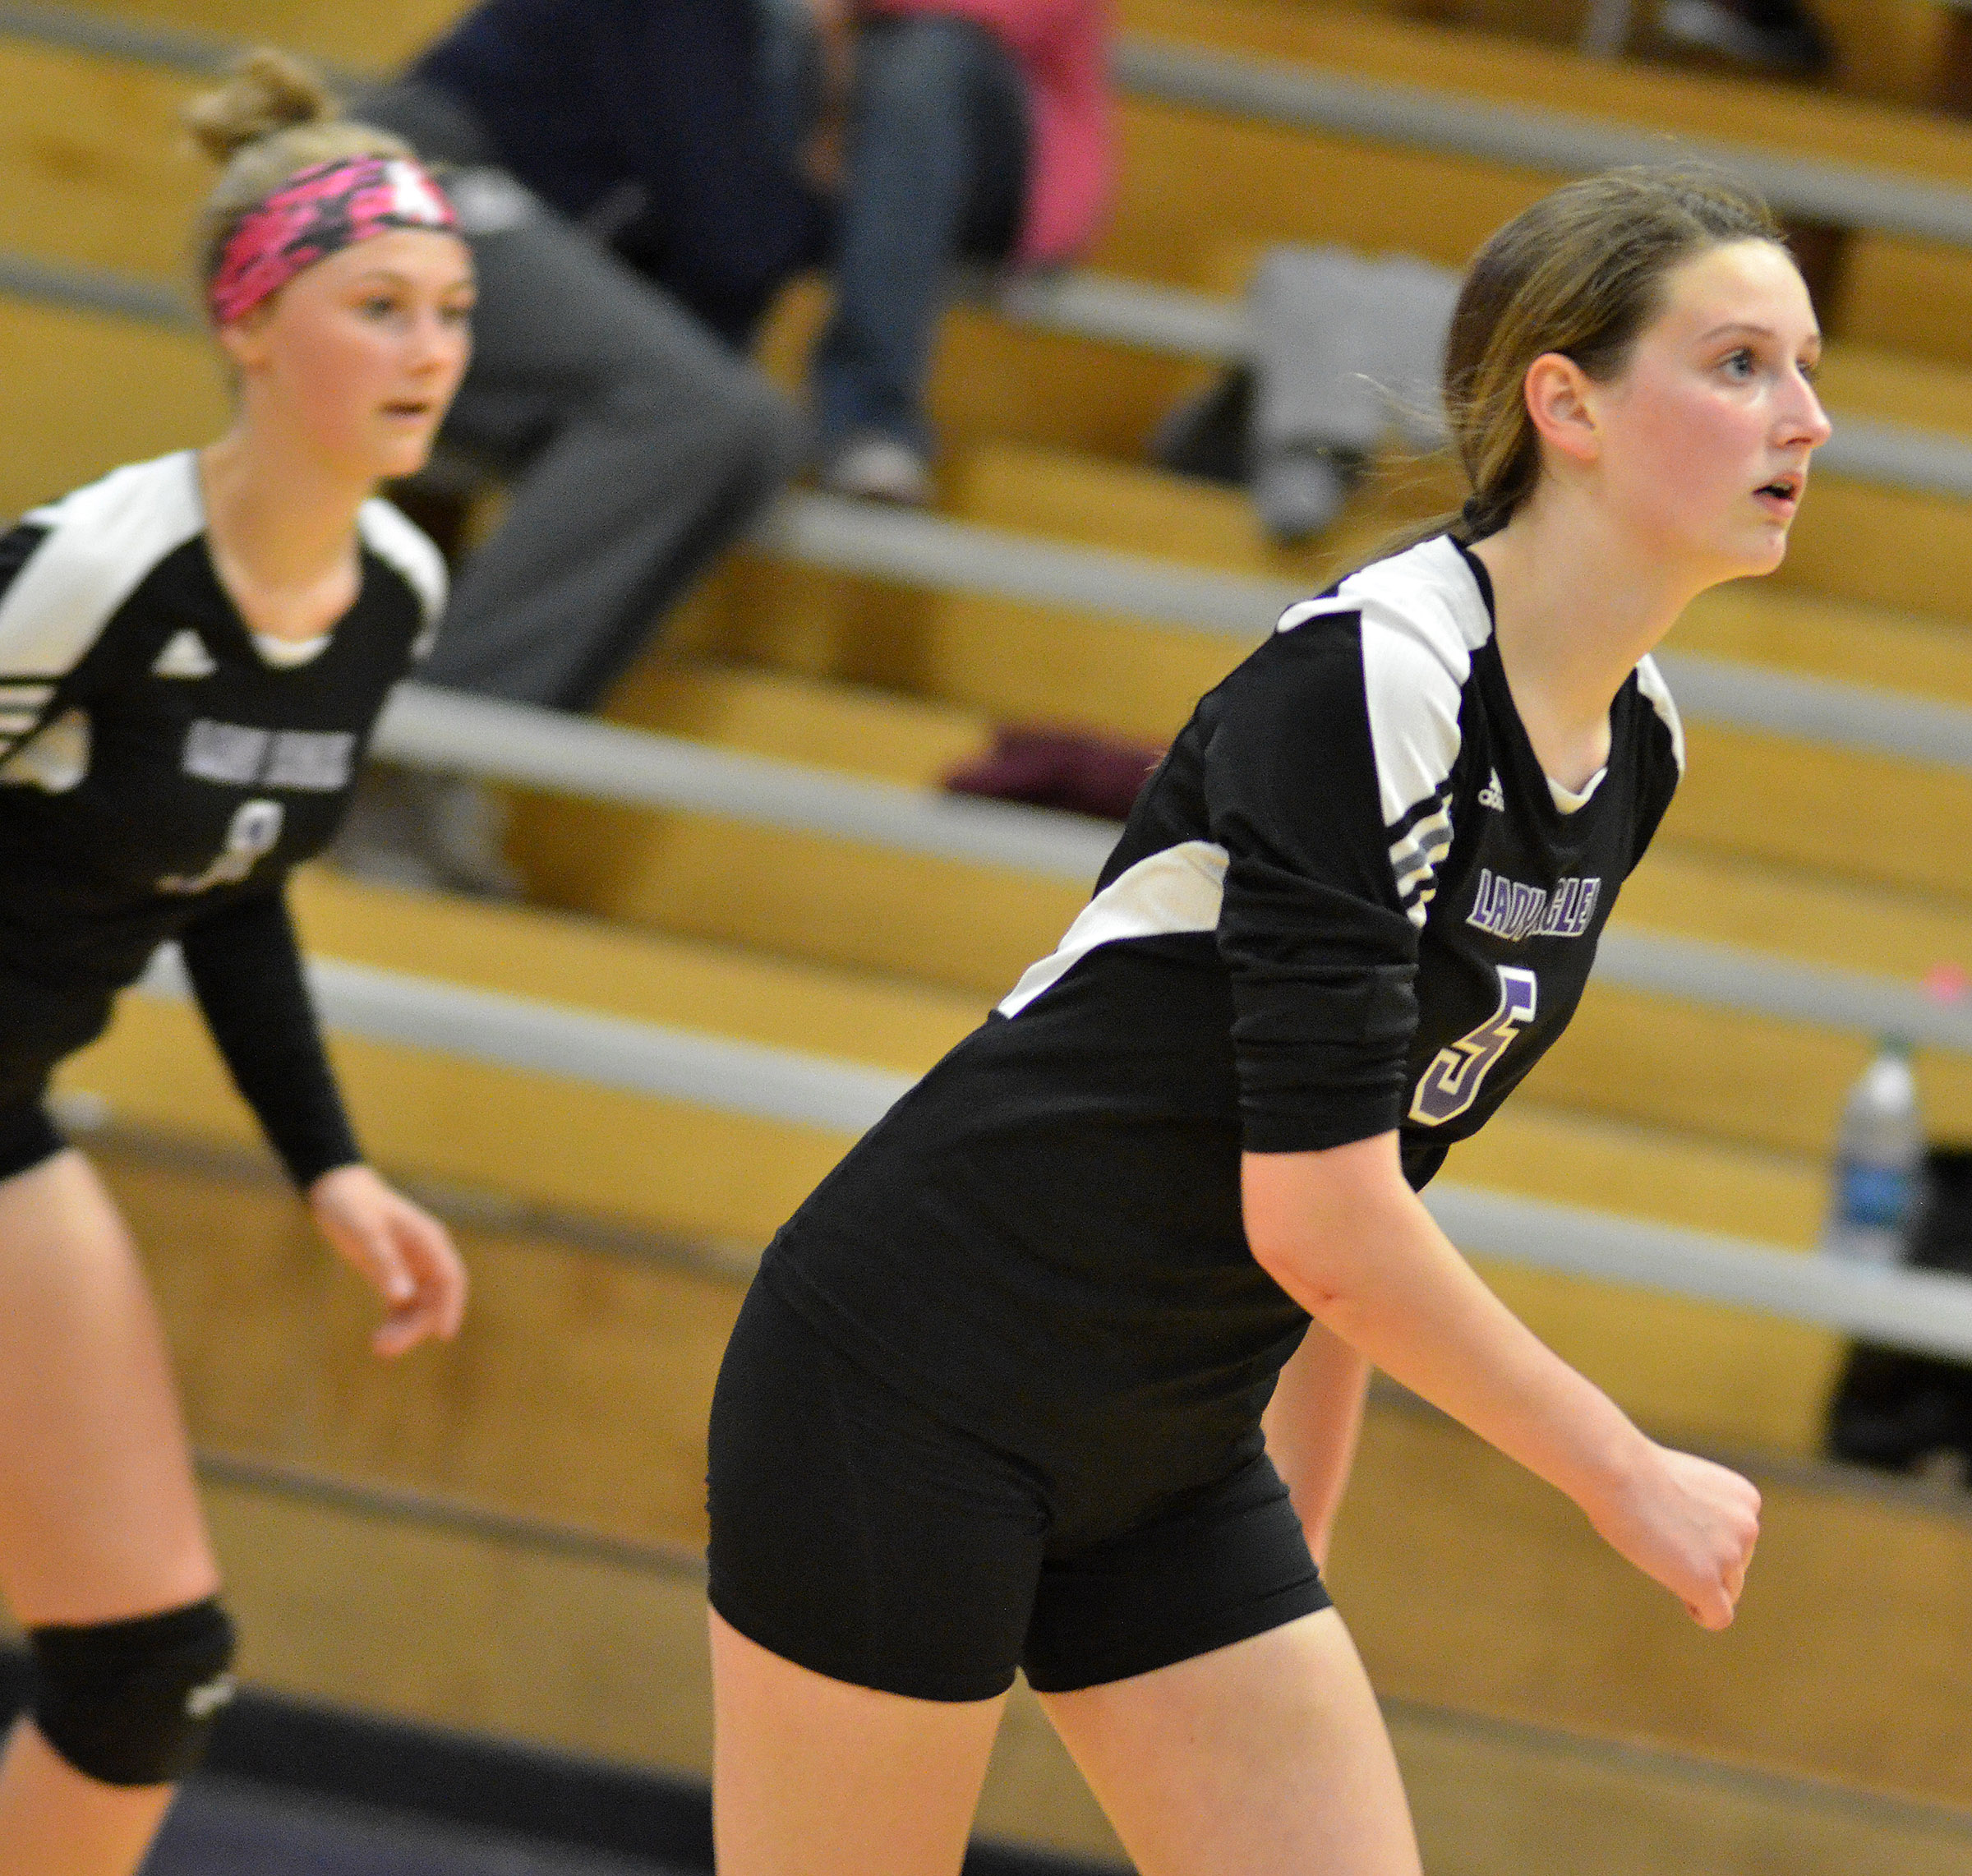 CHS freshman Zoie Sidebottom watches the ball.